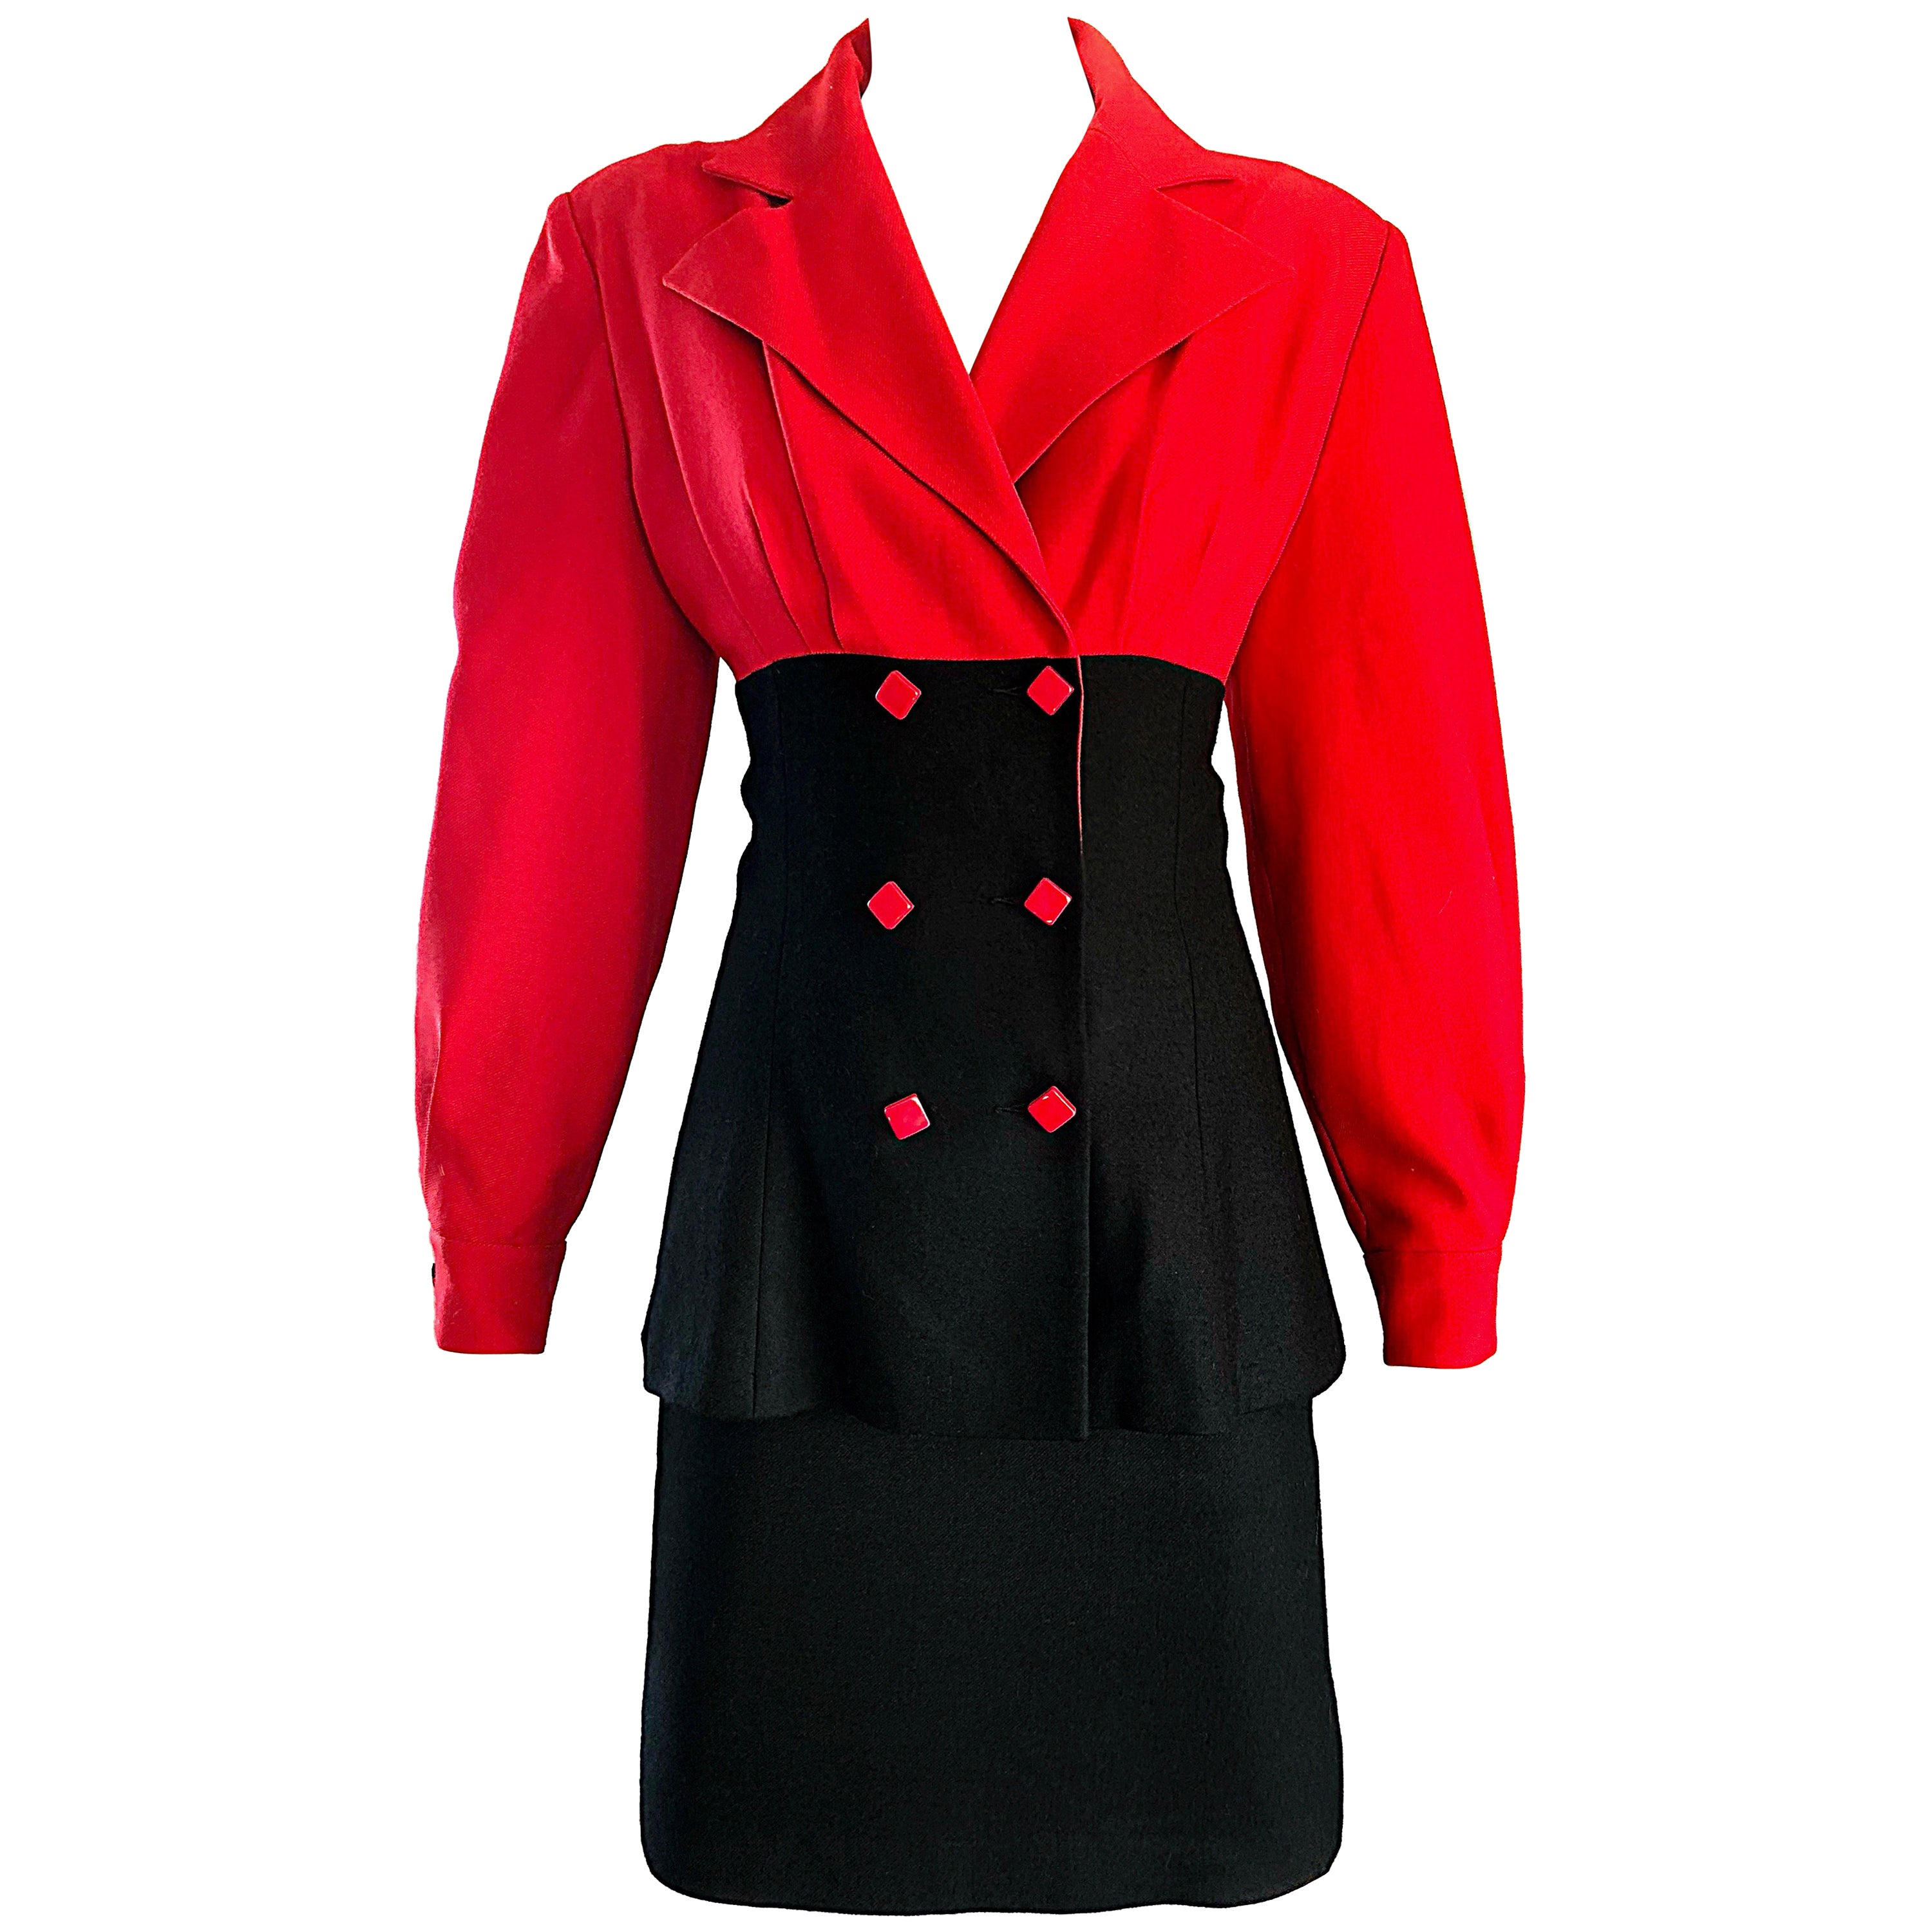 Patrick Kelly Vintage Lipstick Red and Black Color Block Avant Garde Skirt Suit